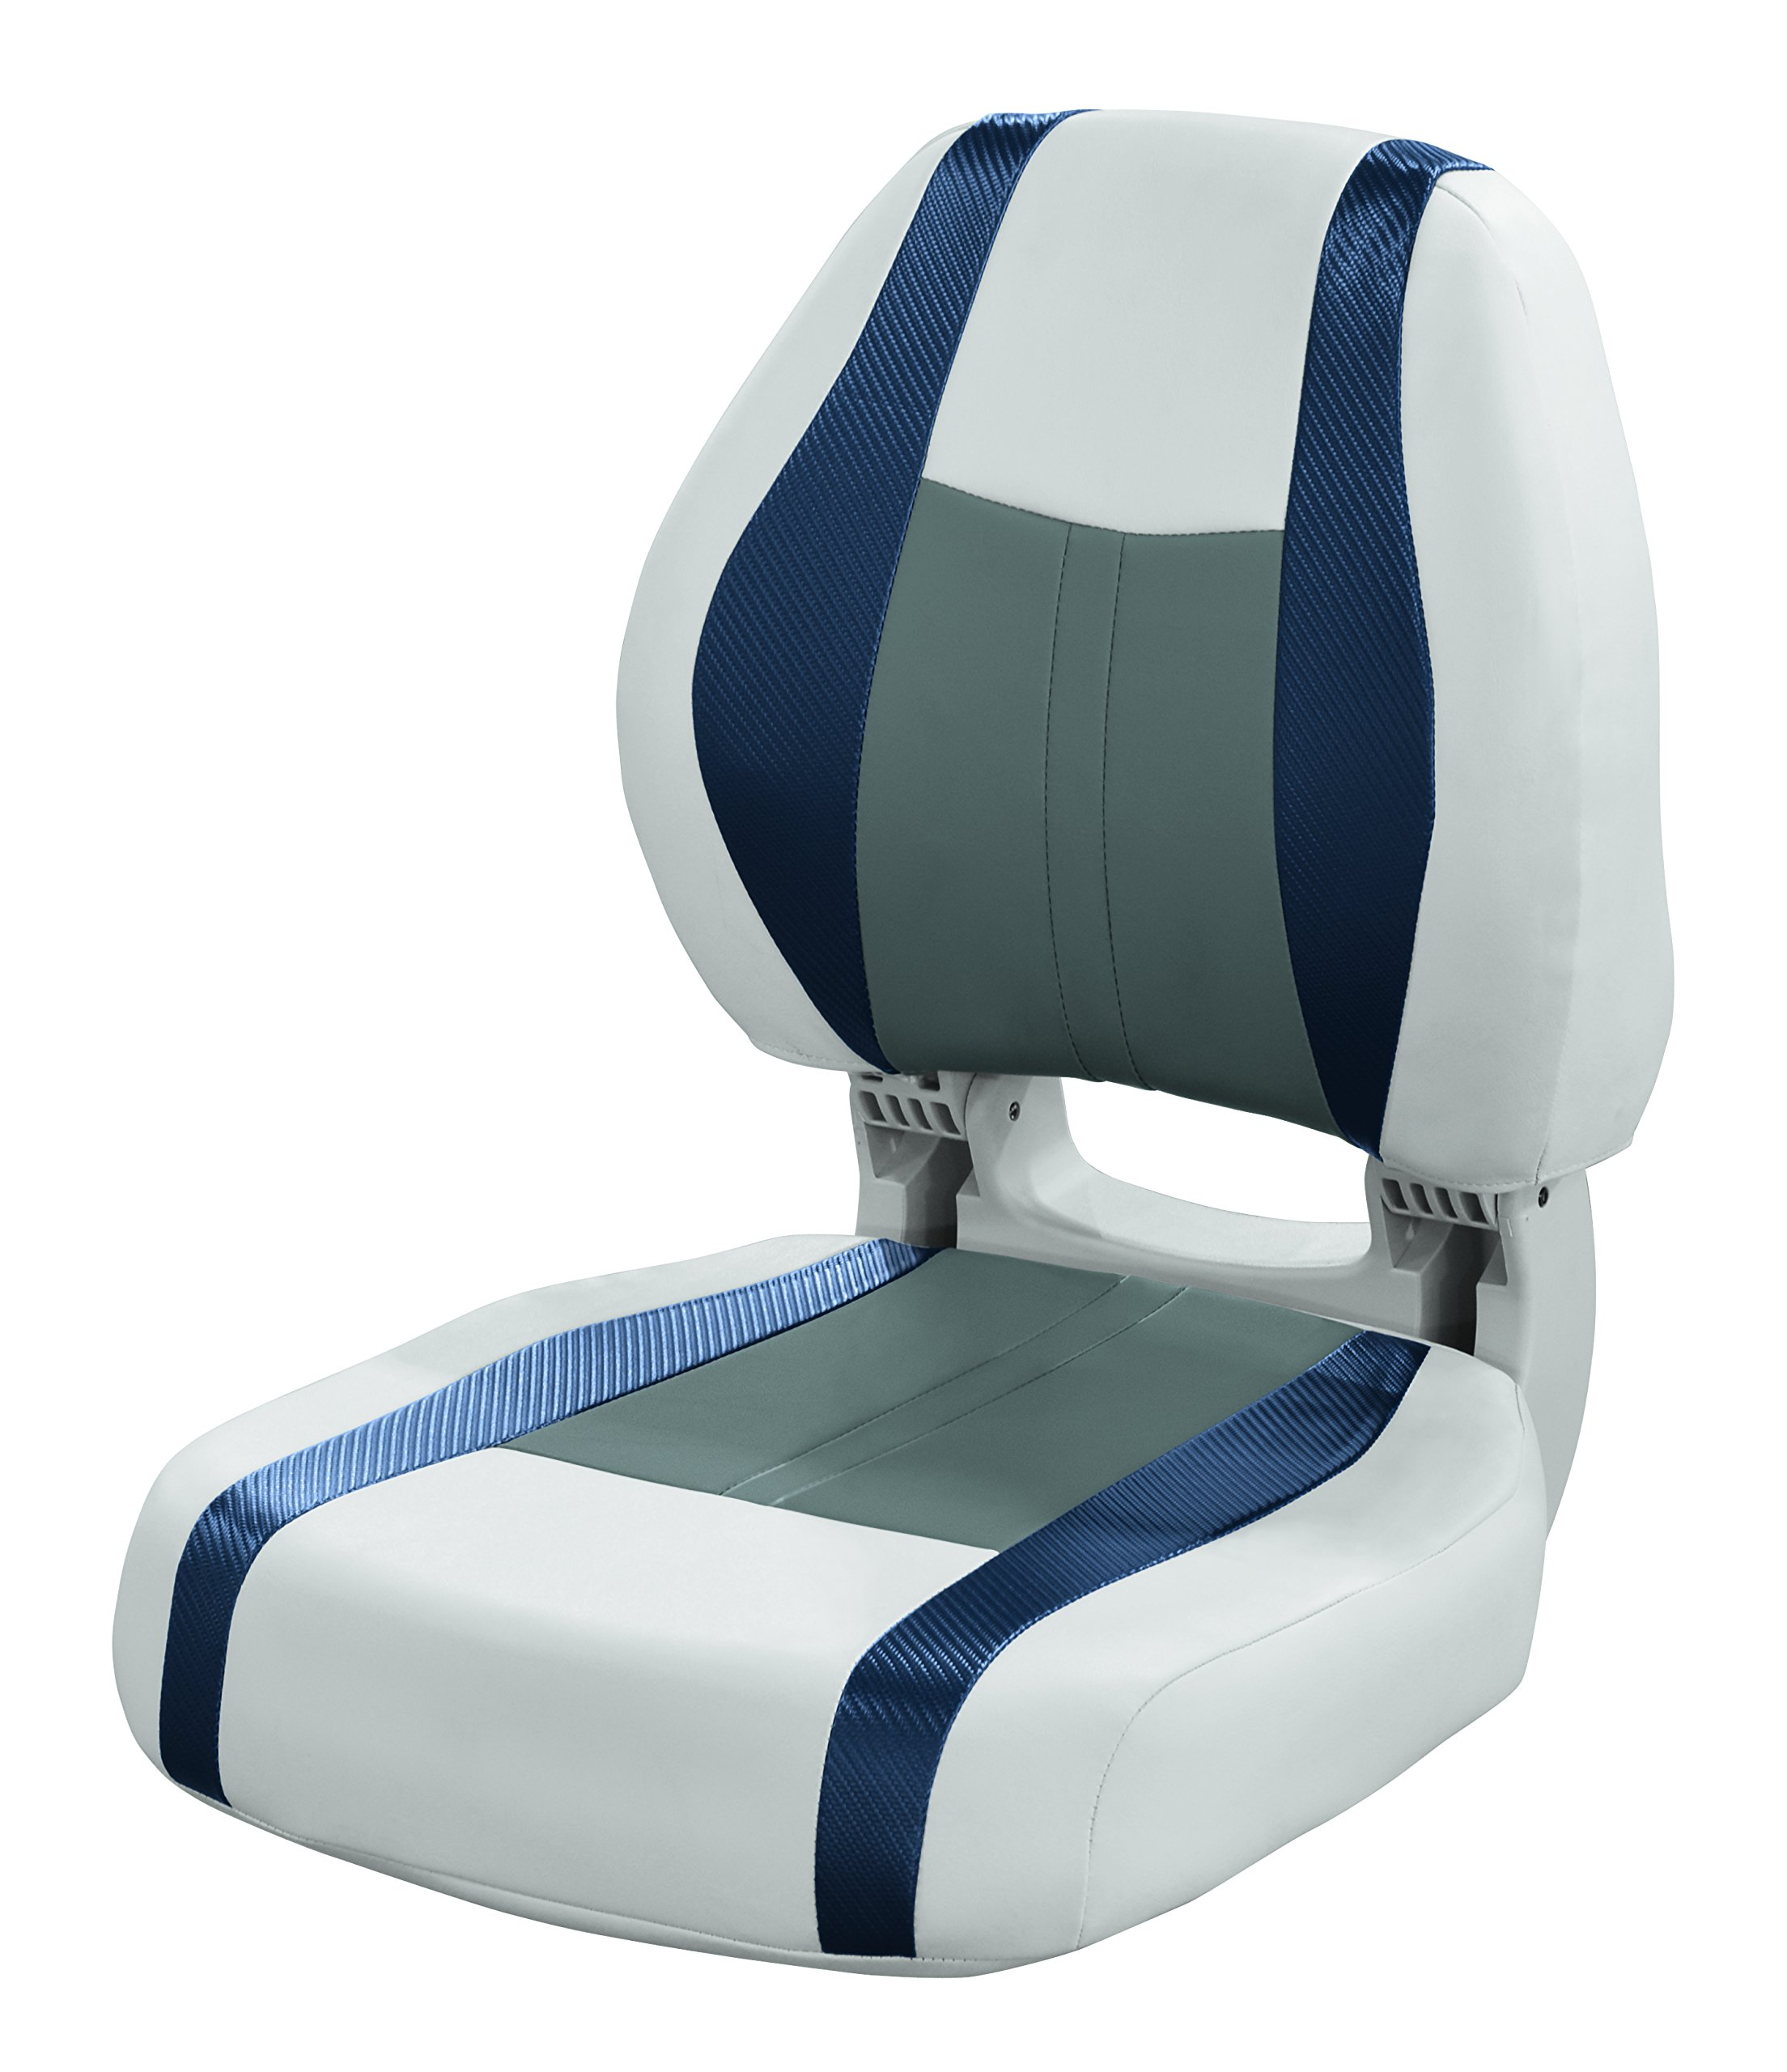 Wise 3011-1801 Sky Grey, Dove Grey, Laguna Blue Carbon Fiber Talon Torsa Frame Folding Boat Seat, Sky Grey-Dove Grey-Laguna Blue Carbon Fiber by Wise